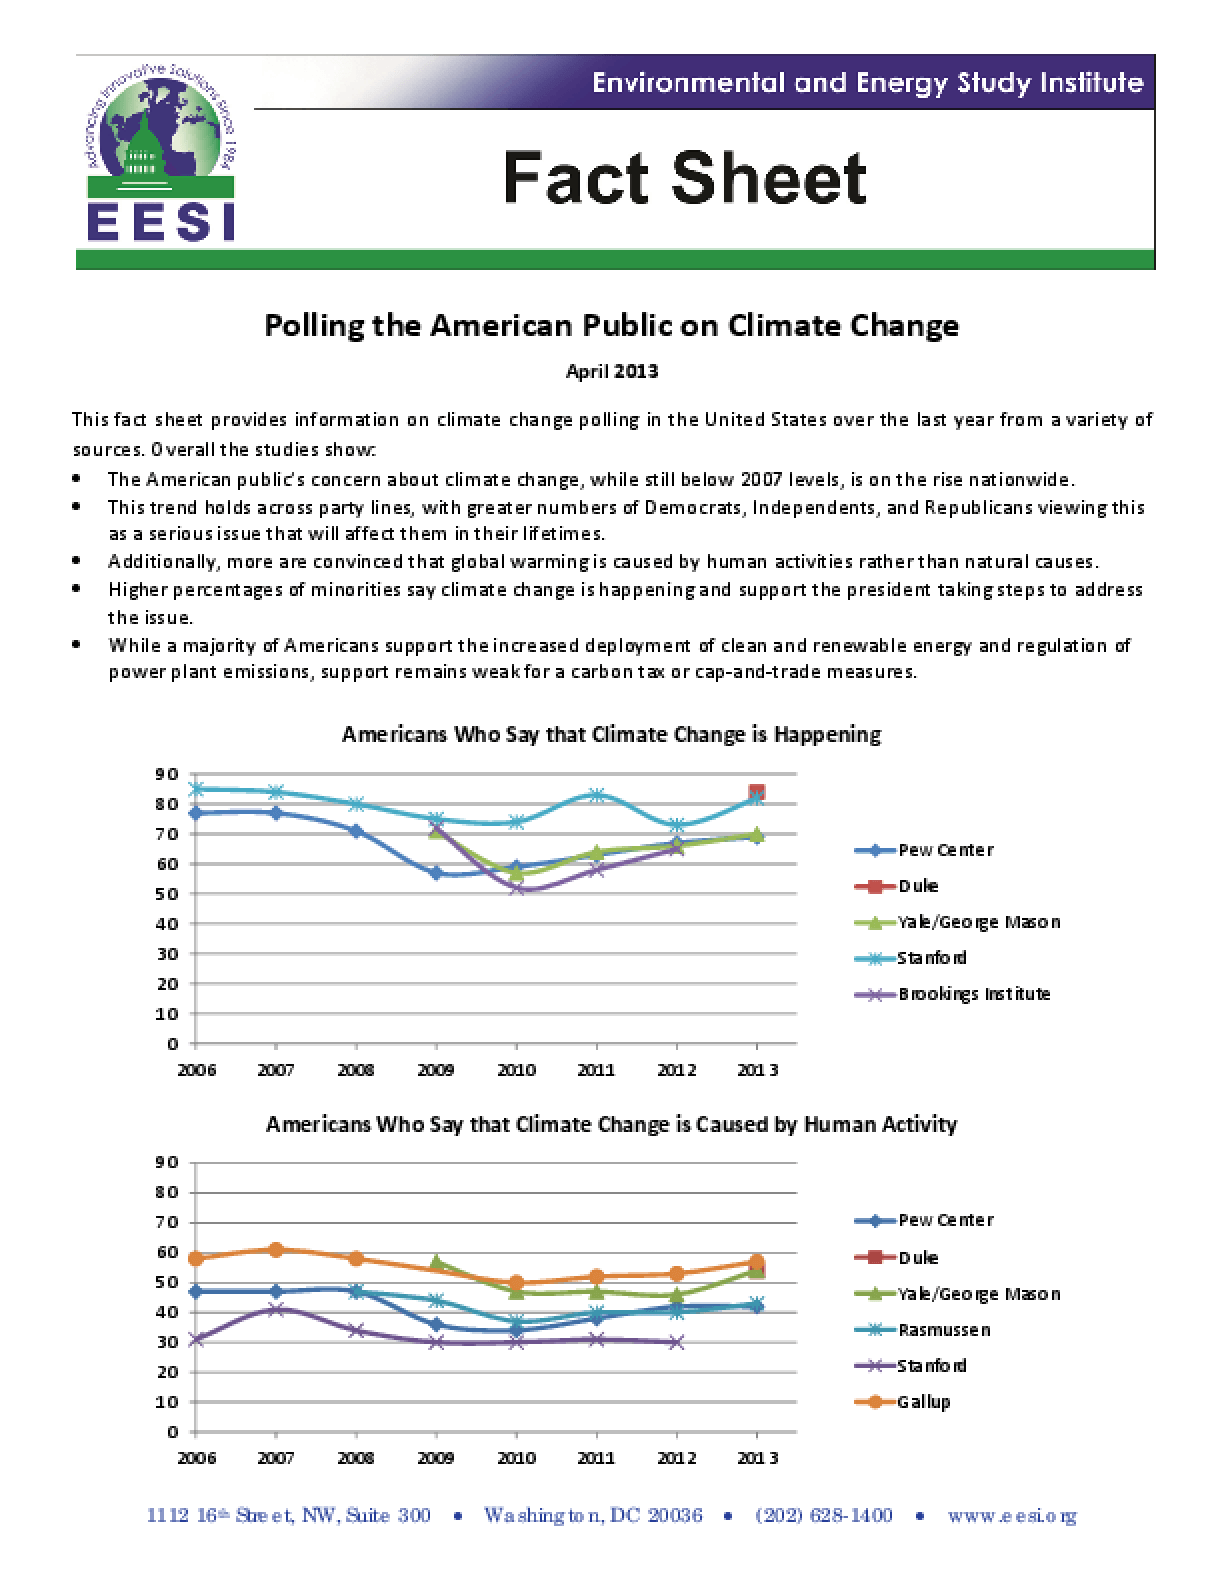 Fact Sheet: Polling the American Public on Climate Change